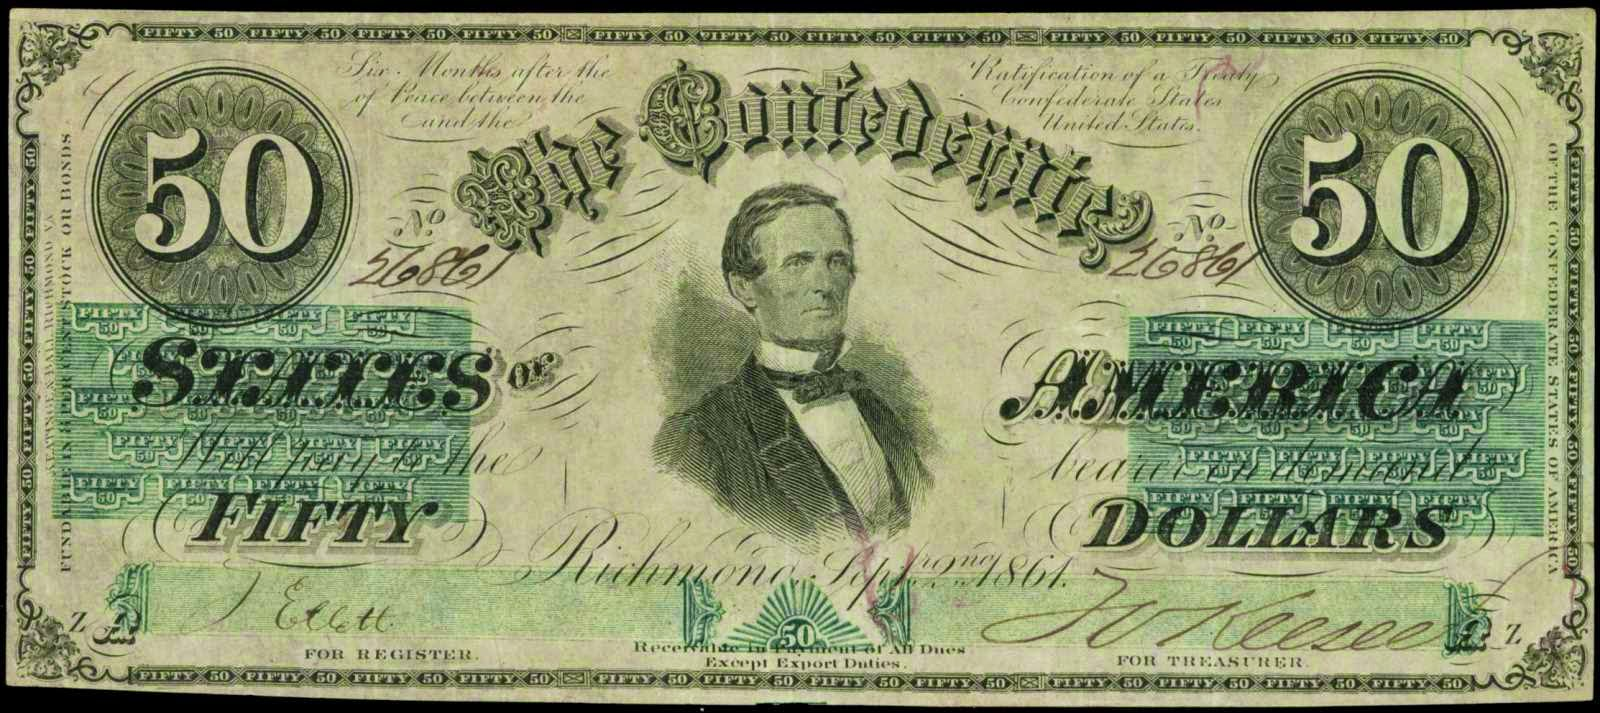 Confederate Paper Money Currency 1861 50 Dollar Bill Jefferson Davis T-16